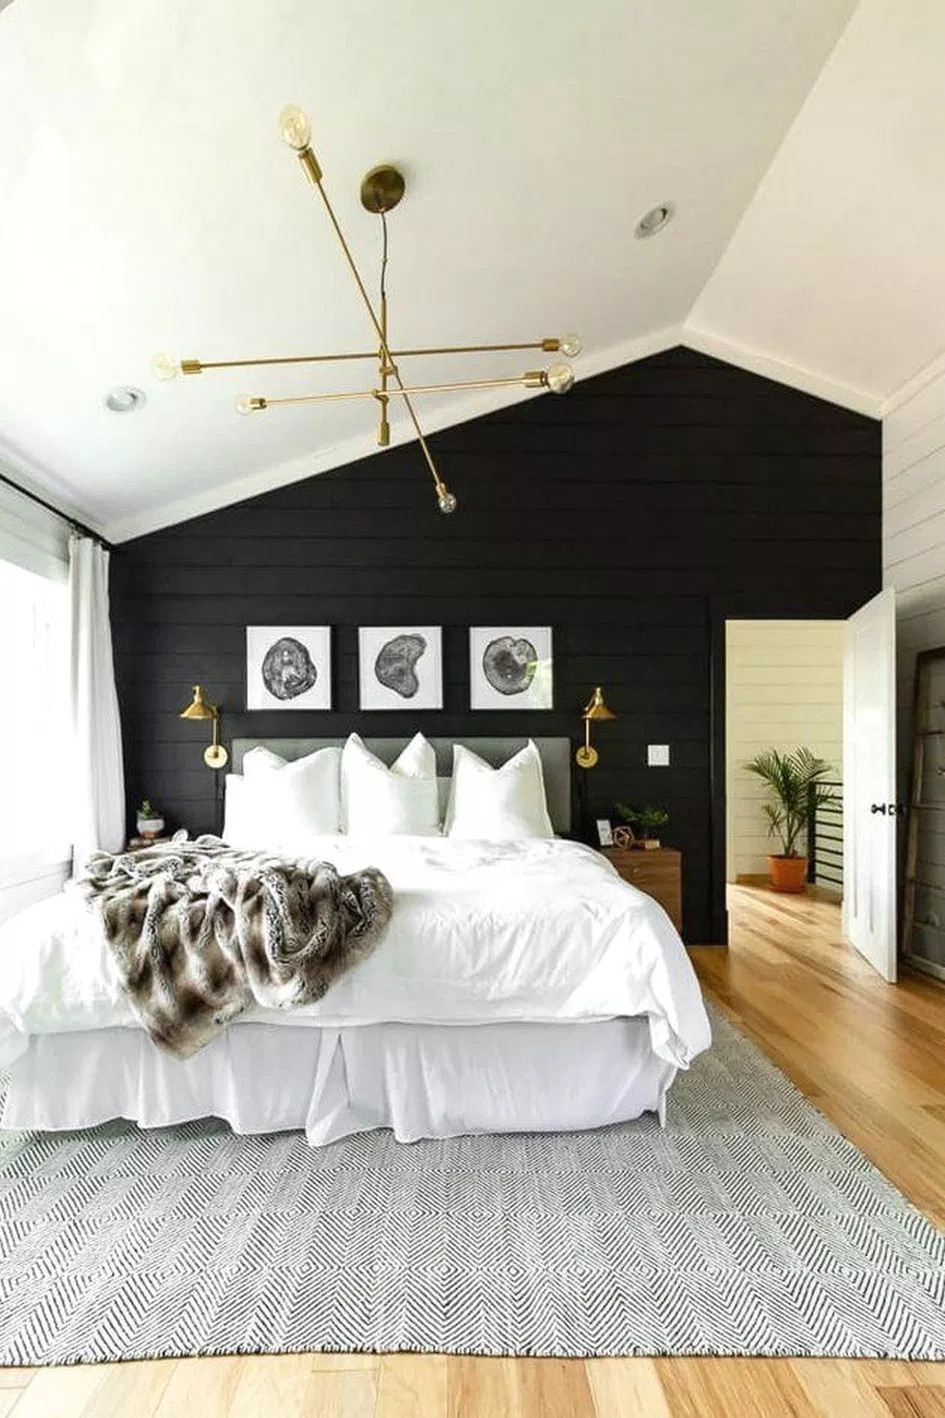 40 Awesome Modern Bedroom Decorating For Your Cozy Bedroom Ideas 39 Design And Decoration White Rustic Bedroom Small Master Bedroom Modern Rustic Bedrooms